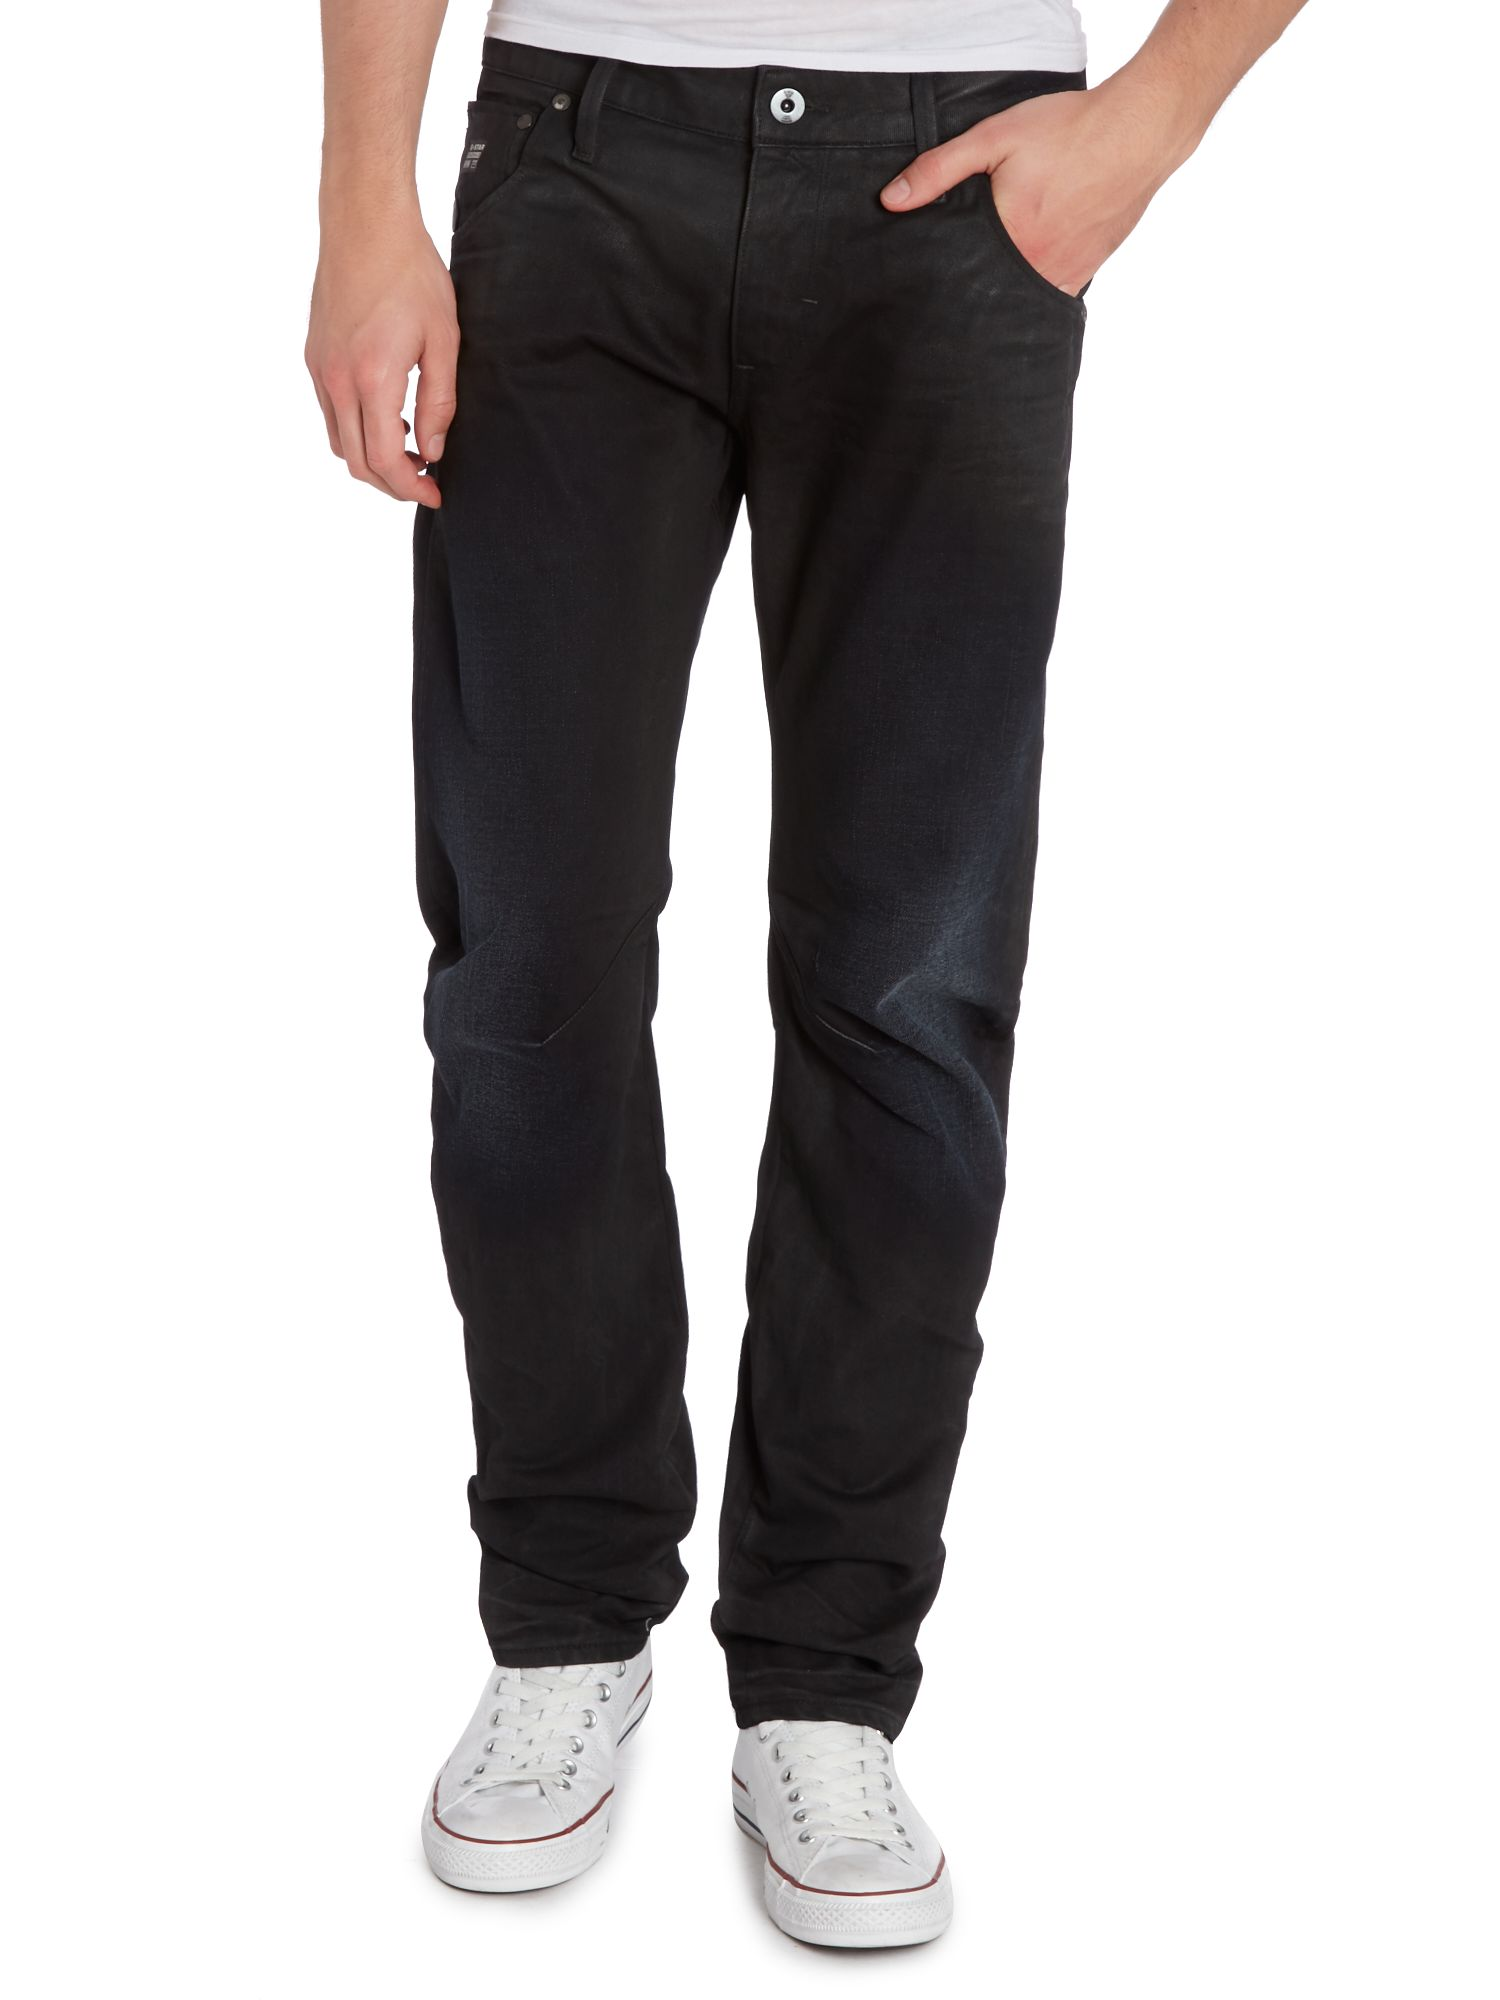 Arc 3d slim fit dark wash jeans